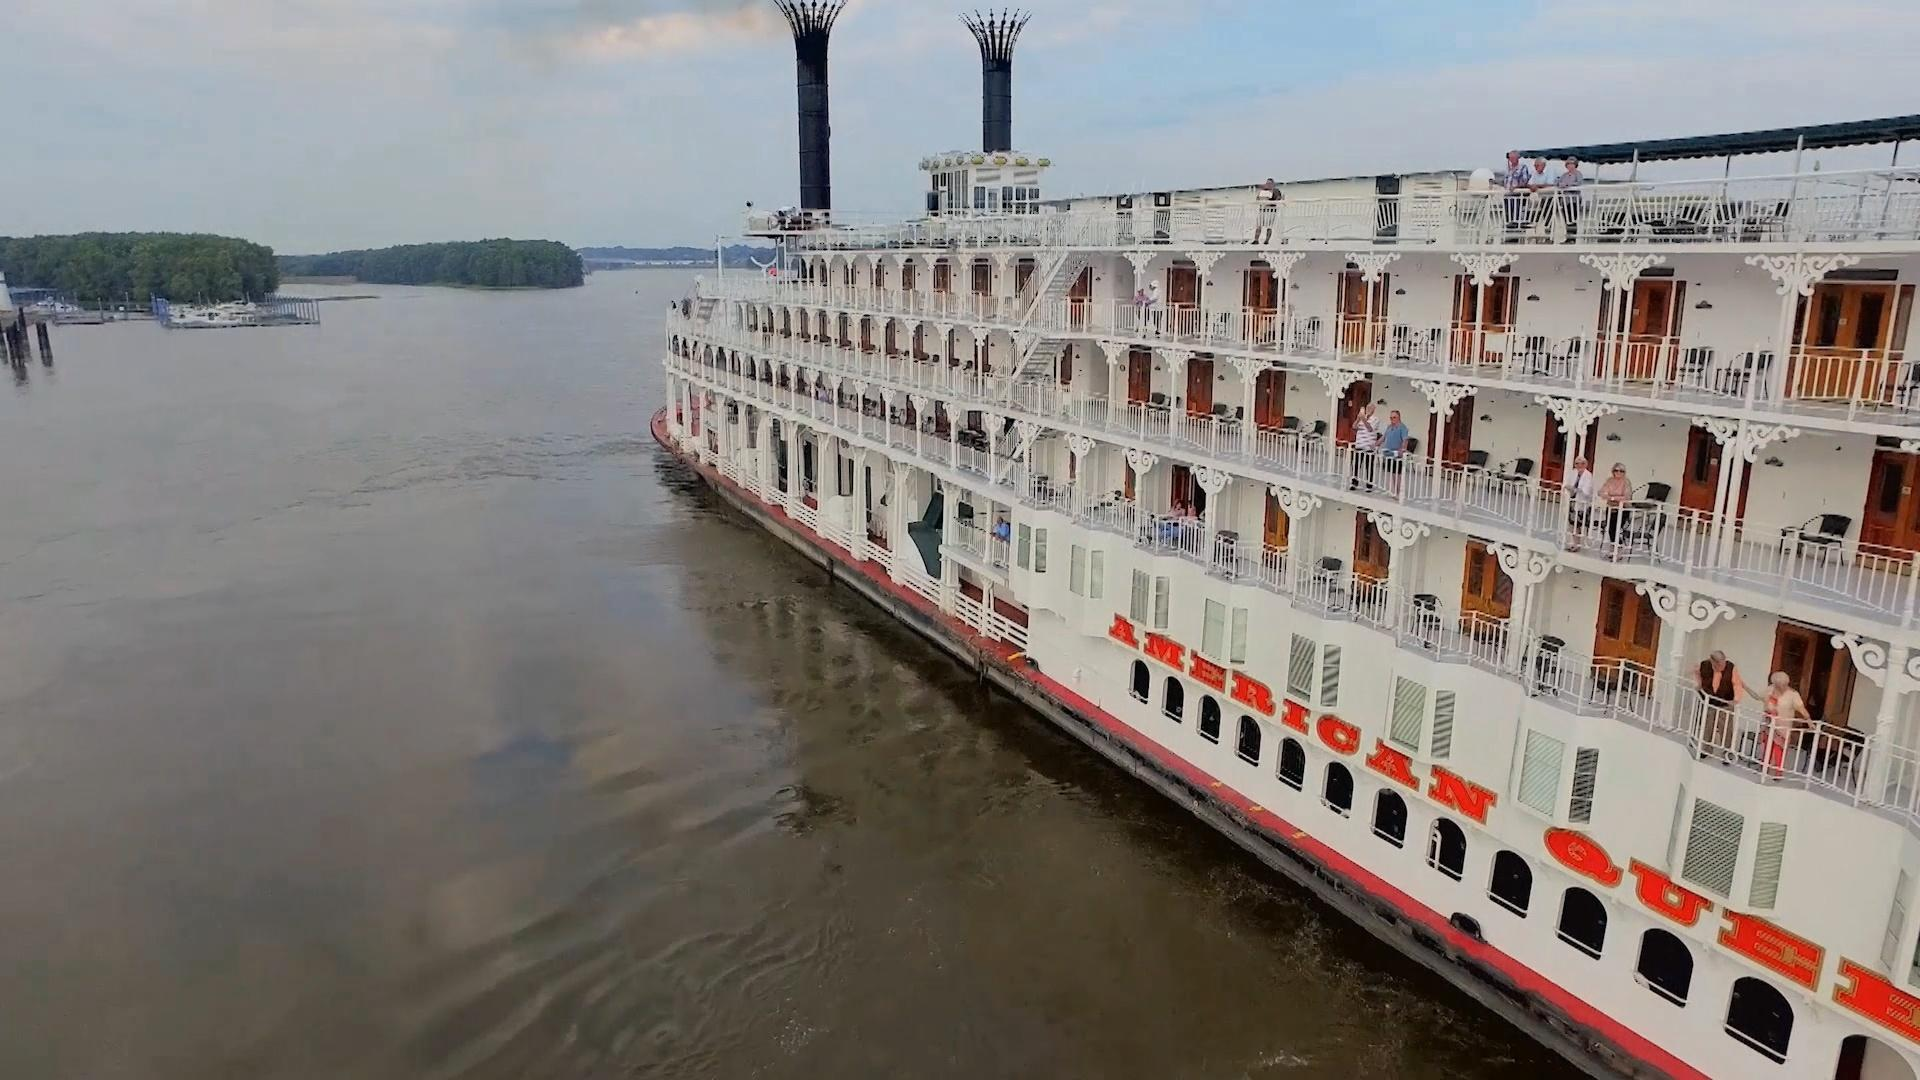 the American Queen sailing down the Mississippi